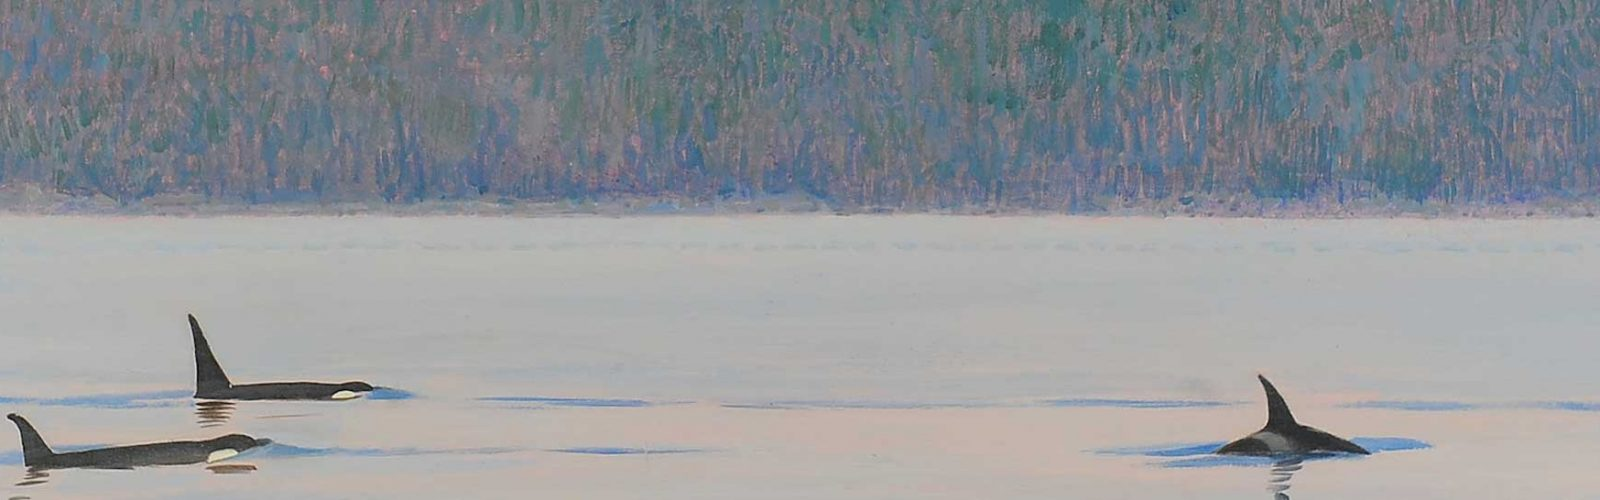 a painting of whale breaching